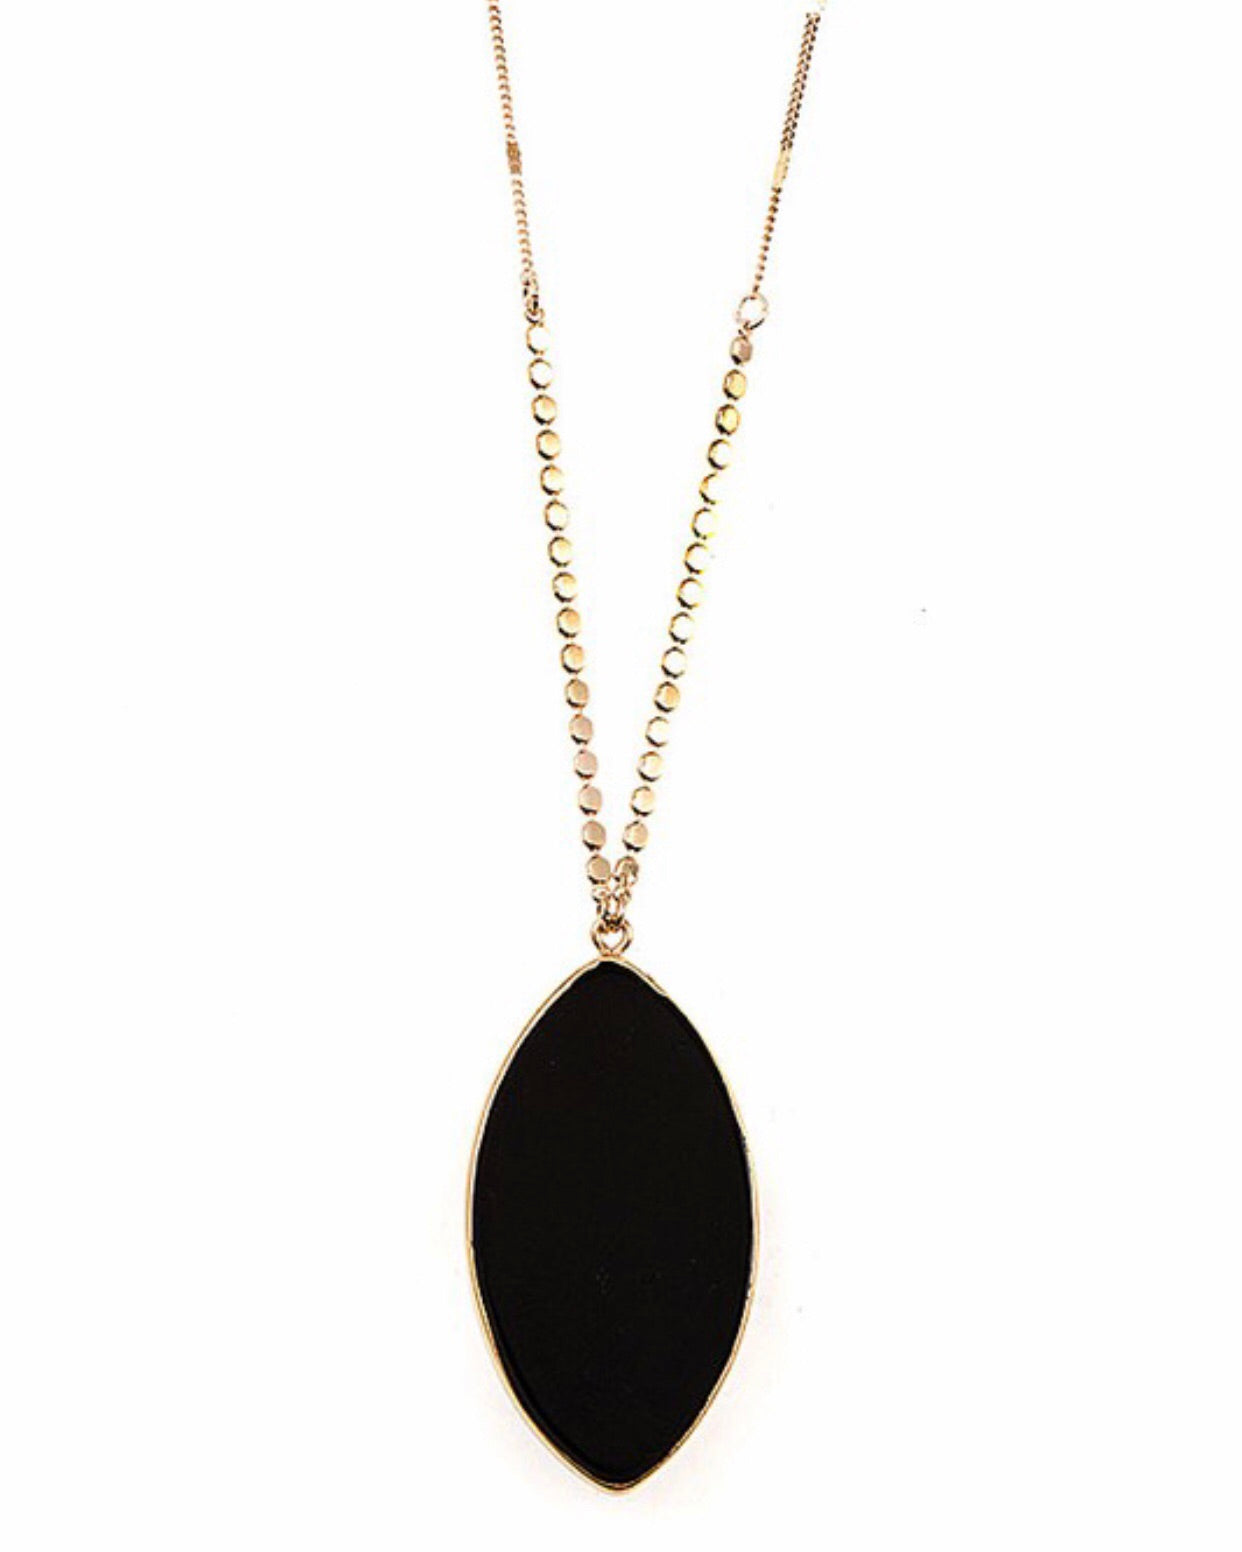 Elongated Stone Pendant Necklace